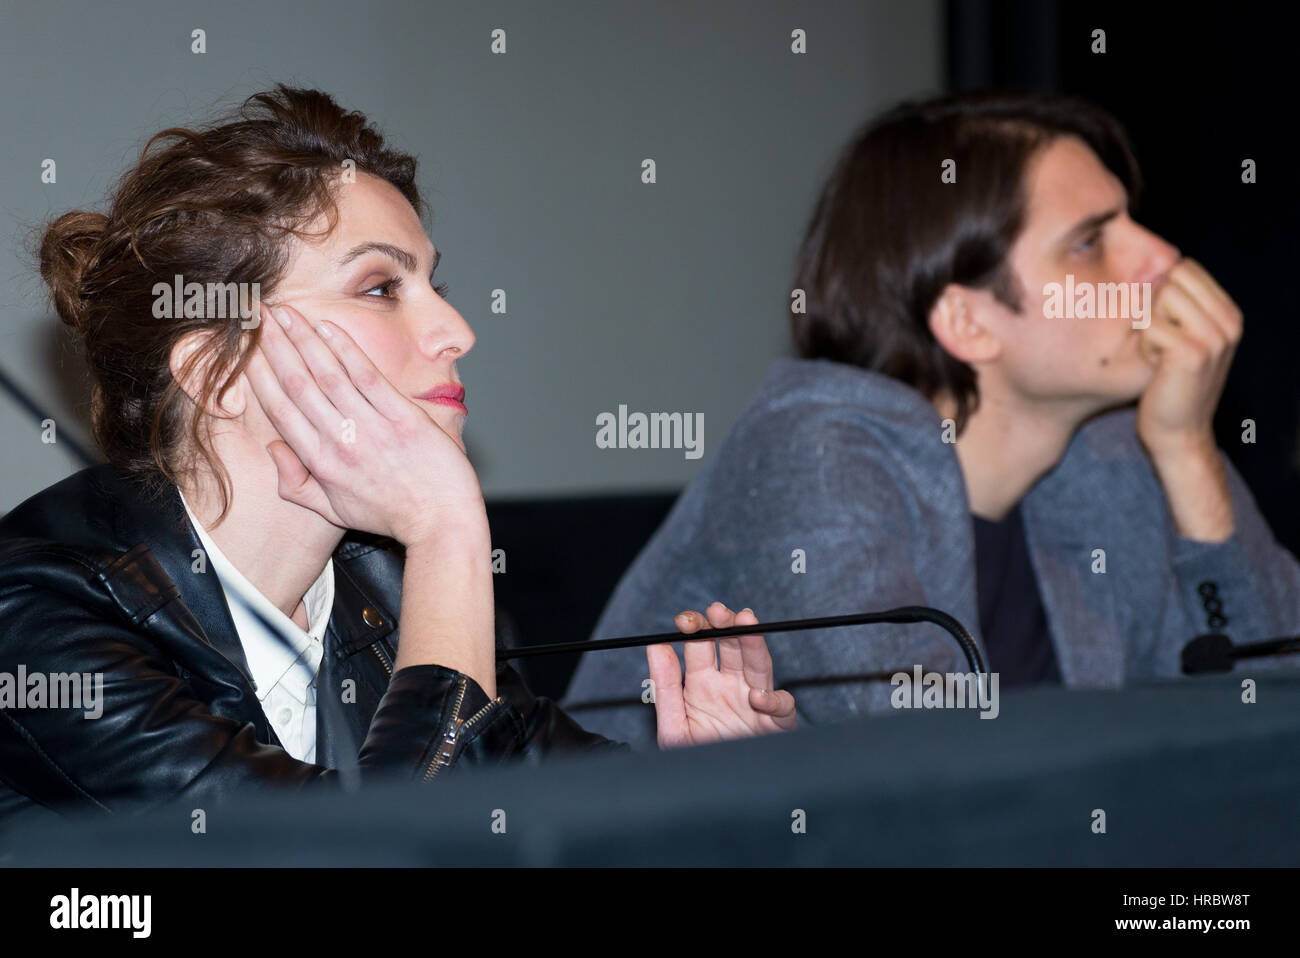 Rome, Italy. 28th Feb, 2017. Isabella Ragonese, attends the photocall of 'Il padre d'Italia' Credit: - Stock Image